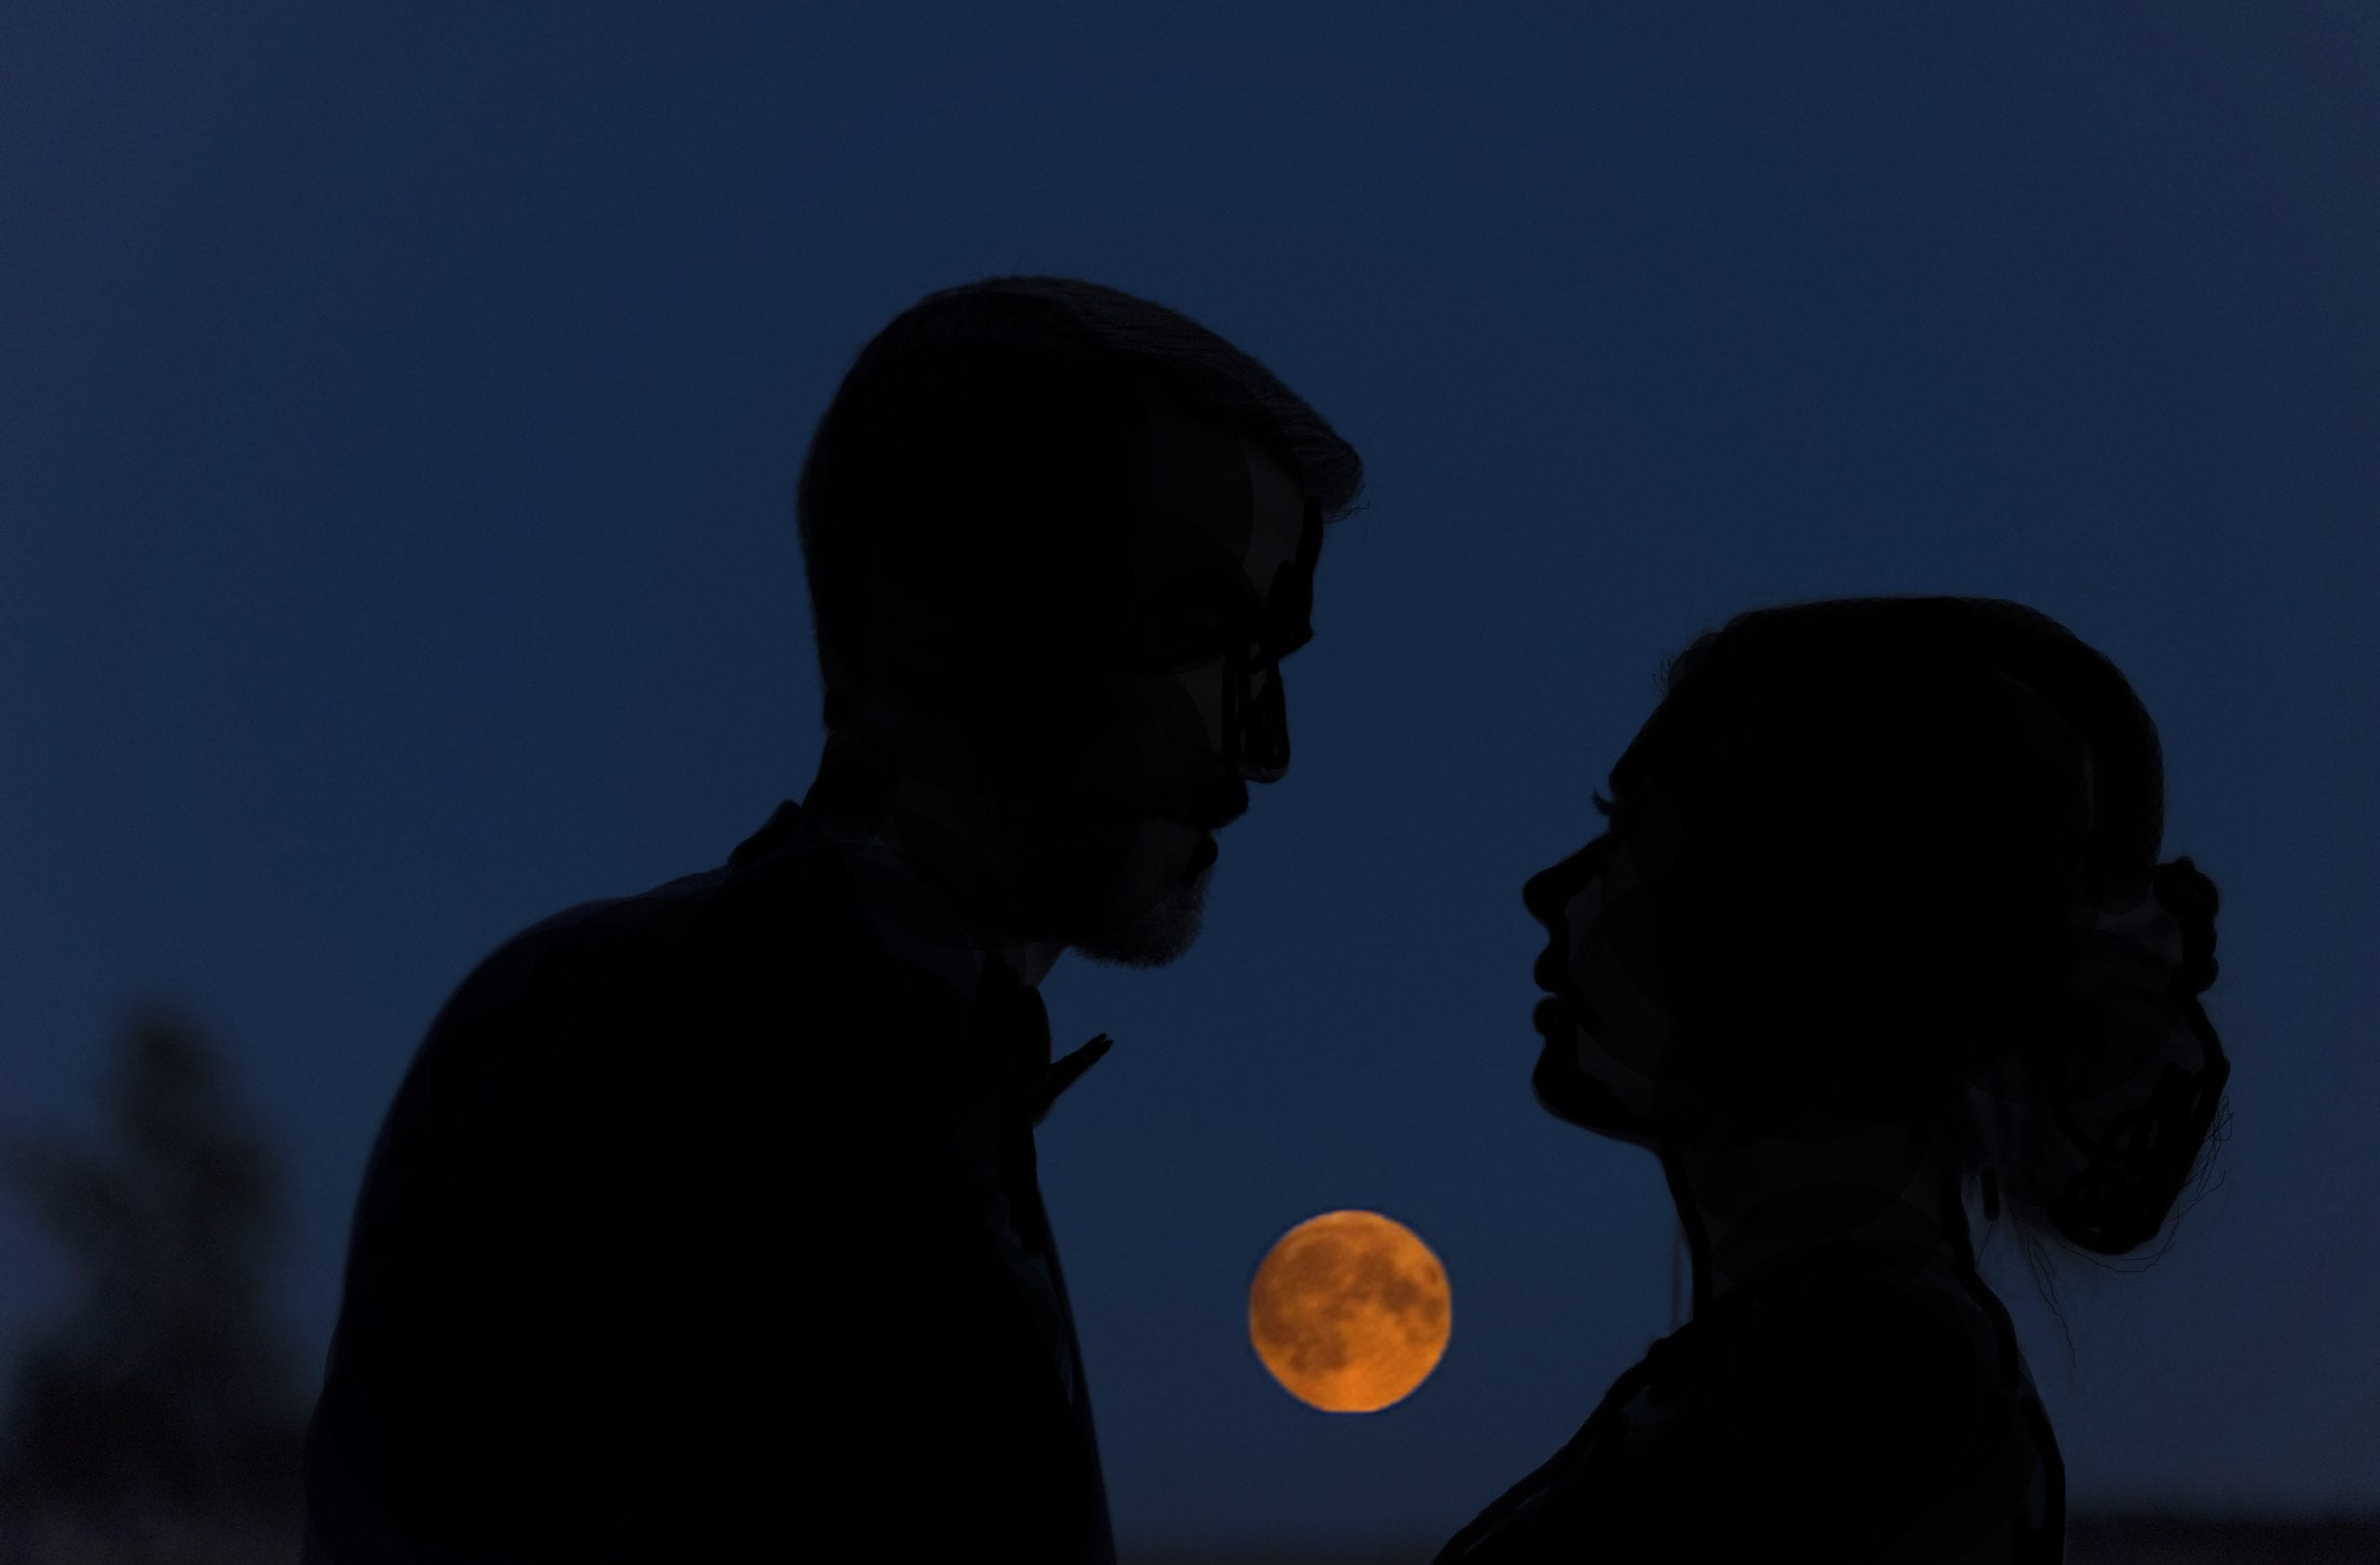 Blood Moon and bride and groom silhouette